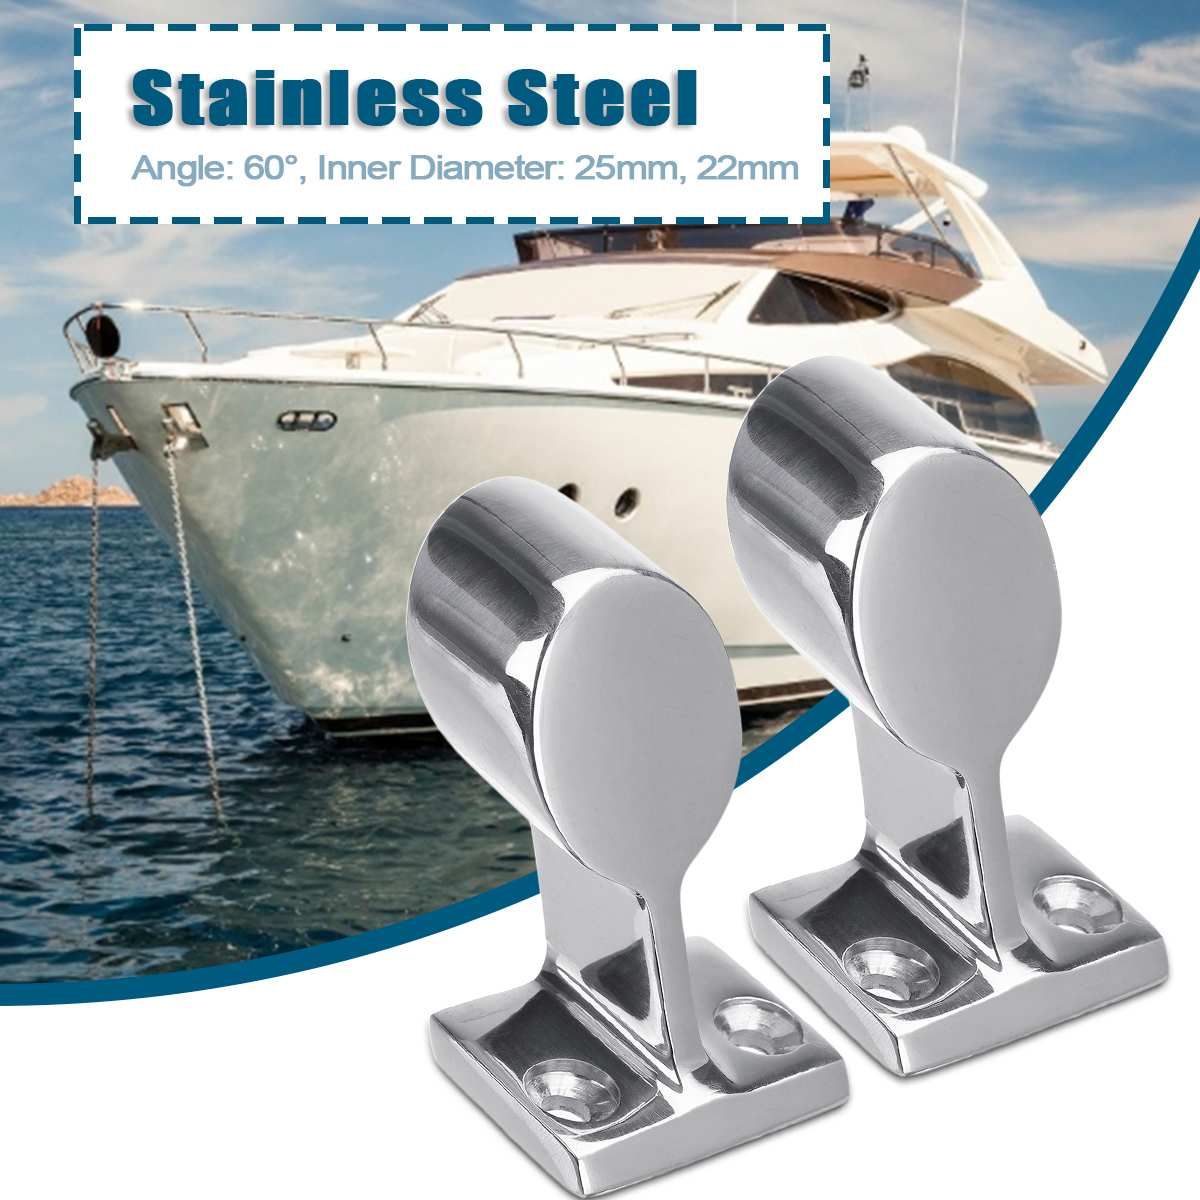 Audew Durable Boat Tube Pipe Base 316 Stainless Steel Marine 60° Railing Handrail Pipe Base Fitting Support Reusable Hardware